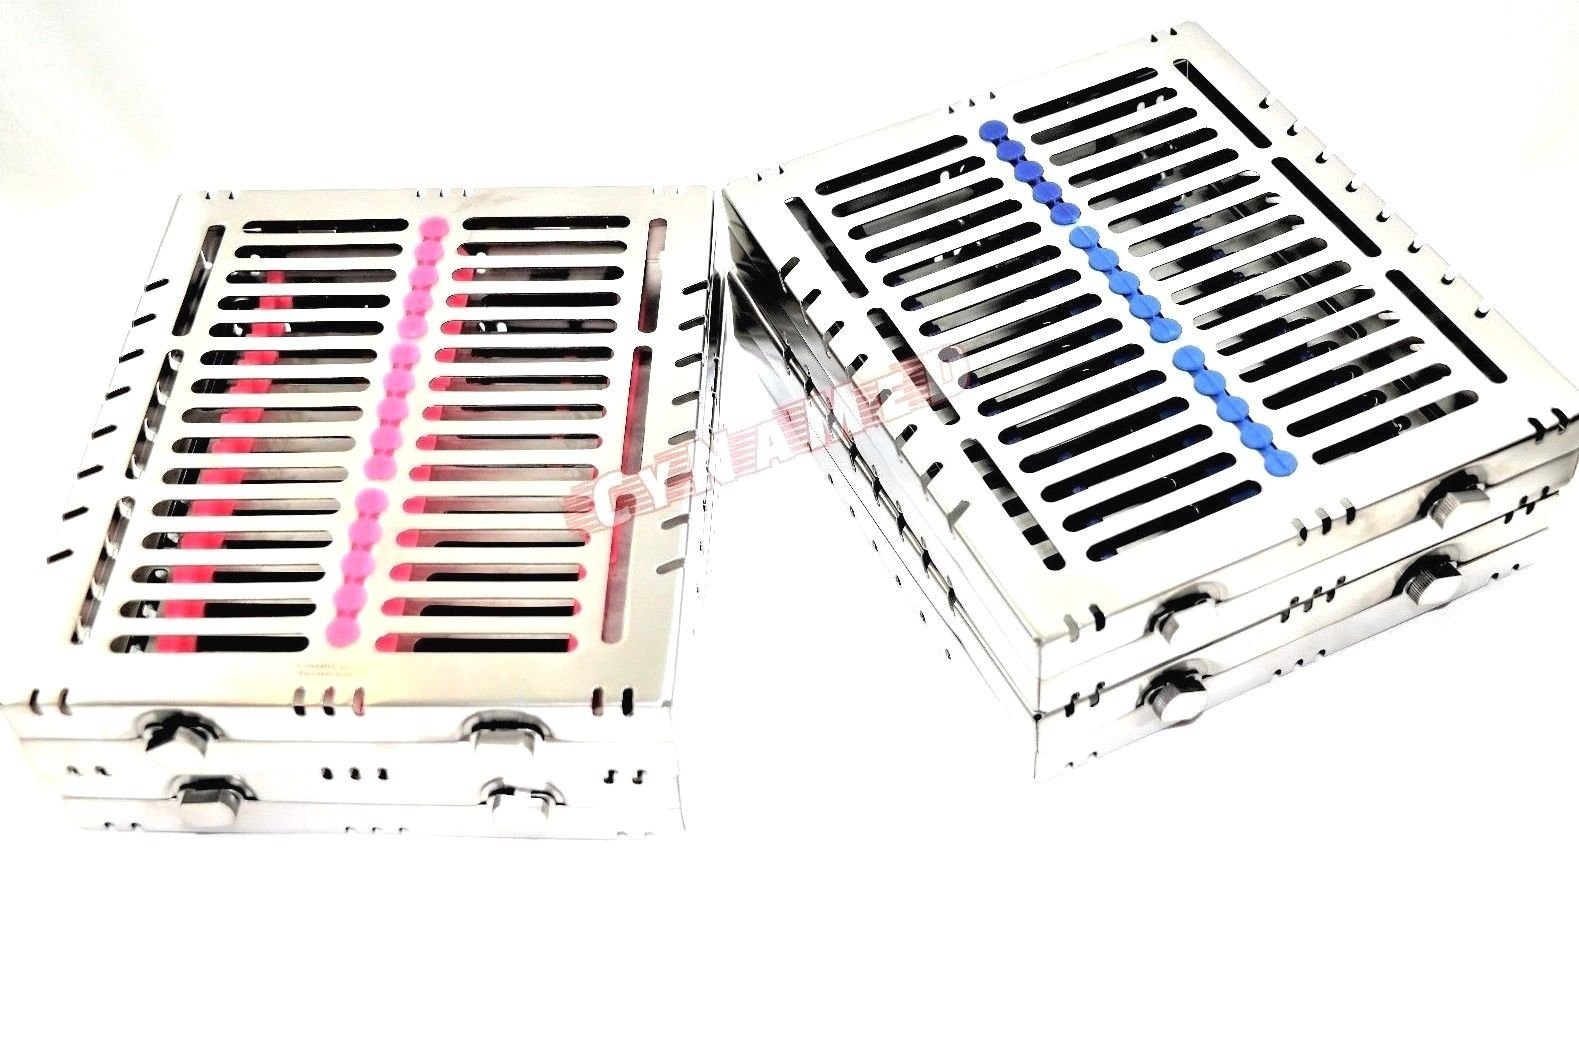 4 German Dental Autoclave Sterilization Cassette Tray for 15 Instruments 8.25X7.25X1.25'' Pink and Blue CYNAMED by CYNAMED (Image #2)